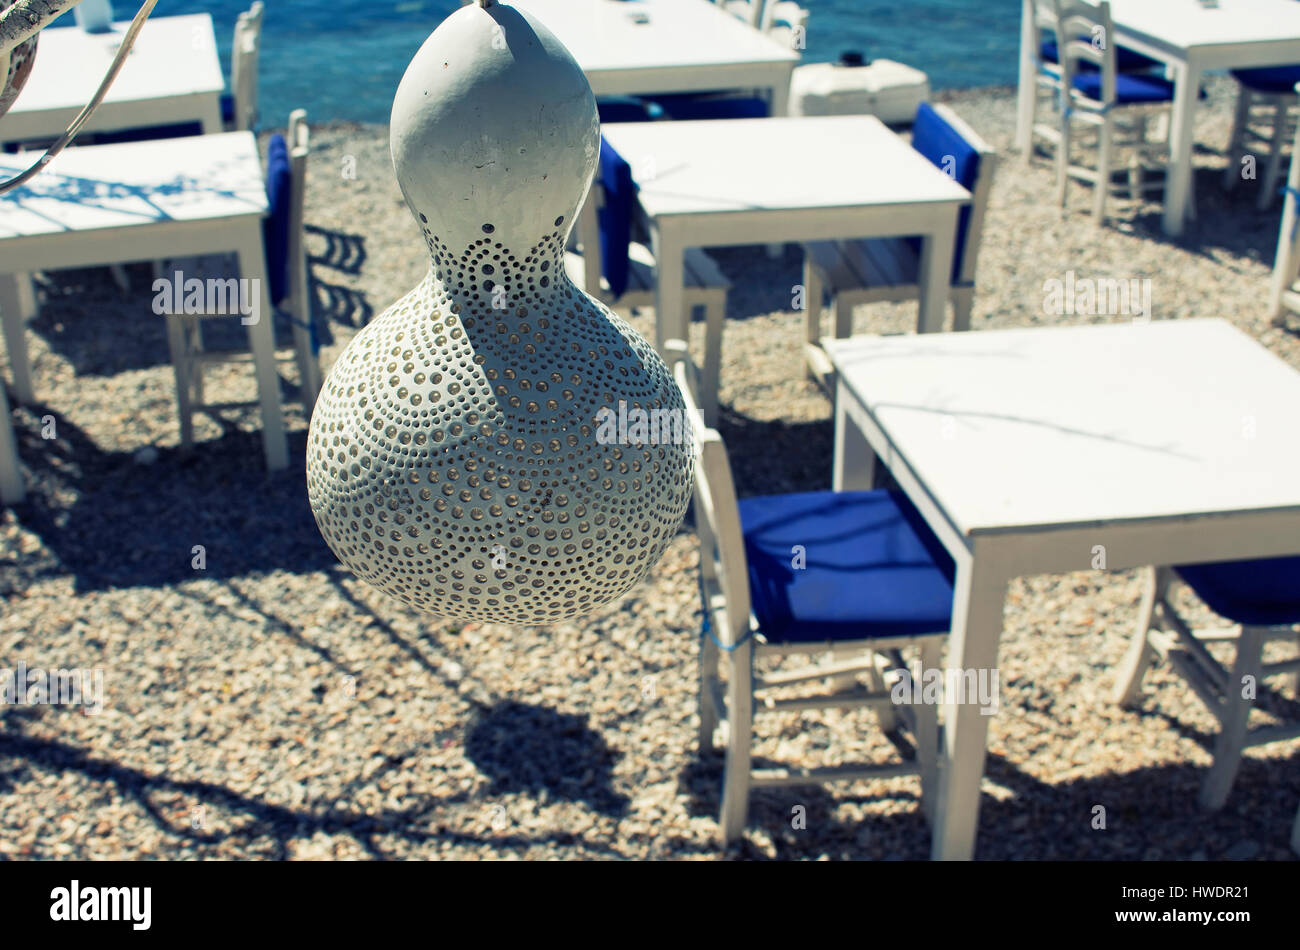 Handmade Lamp Made Of Water Pumpkin Calabash At Seaside Bodrum City In Turkey Tables On Beach Are The Background This Style Lighting Is Comm